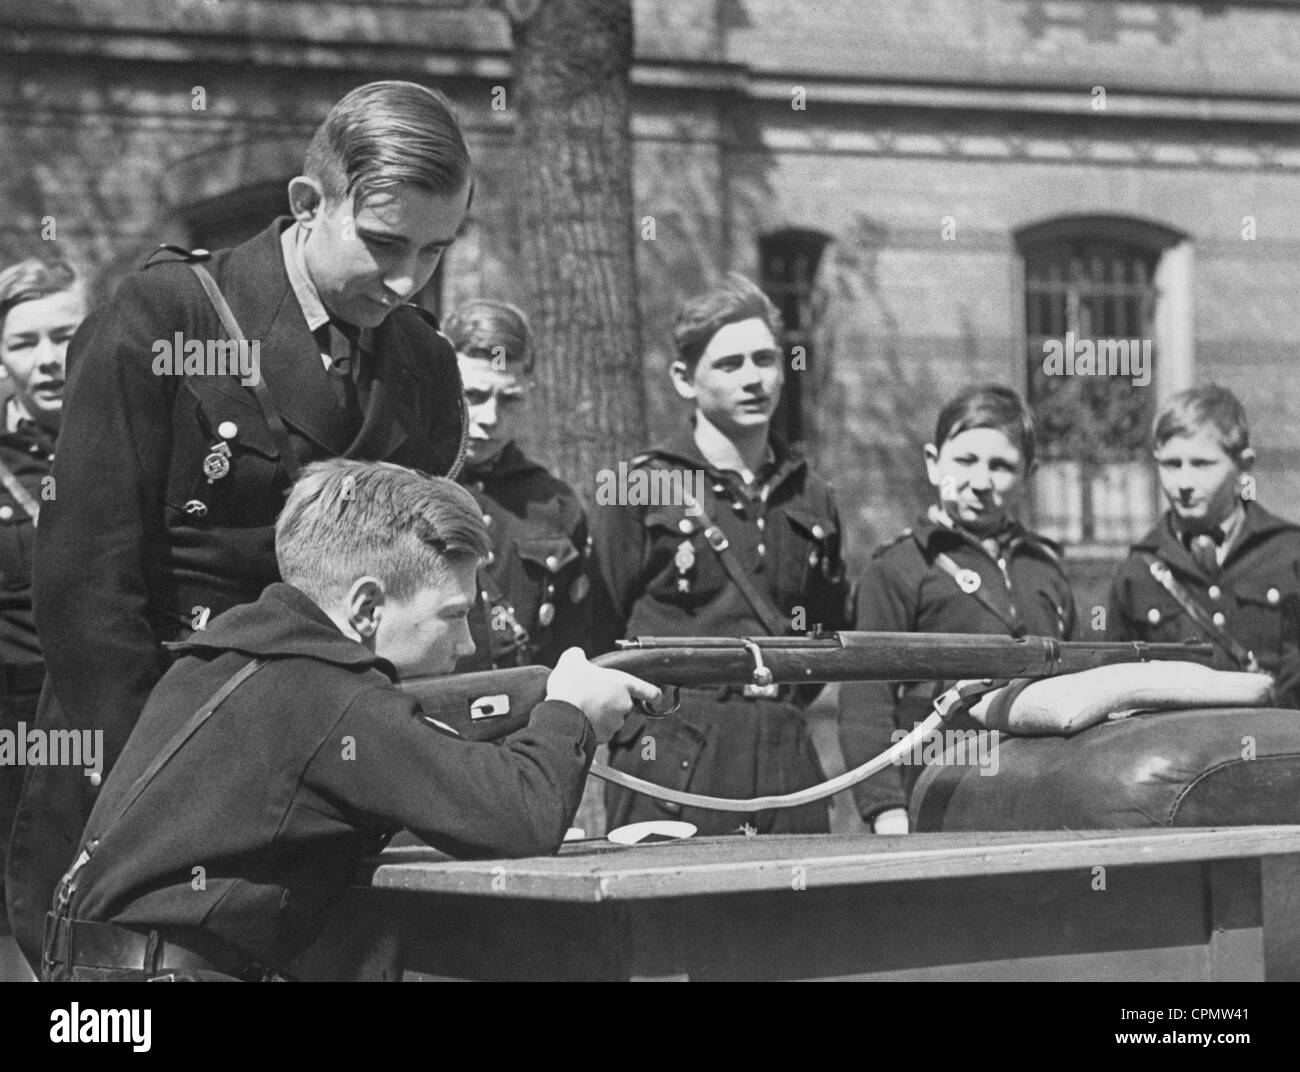 Weapons training of the Hitler Youth - Stock Image